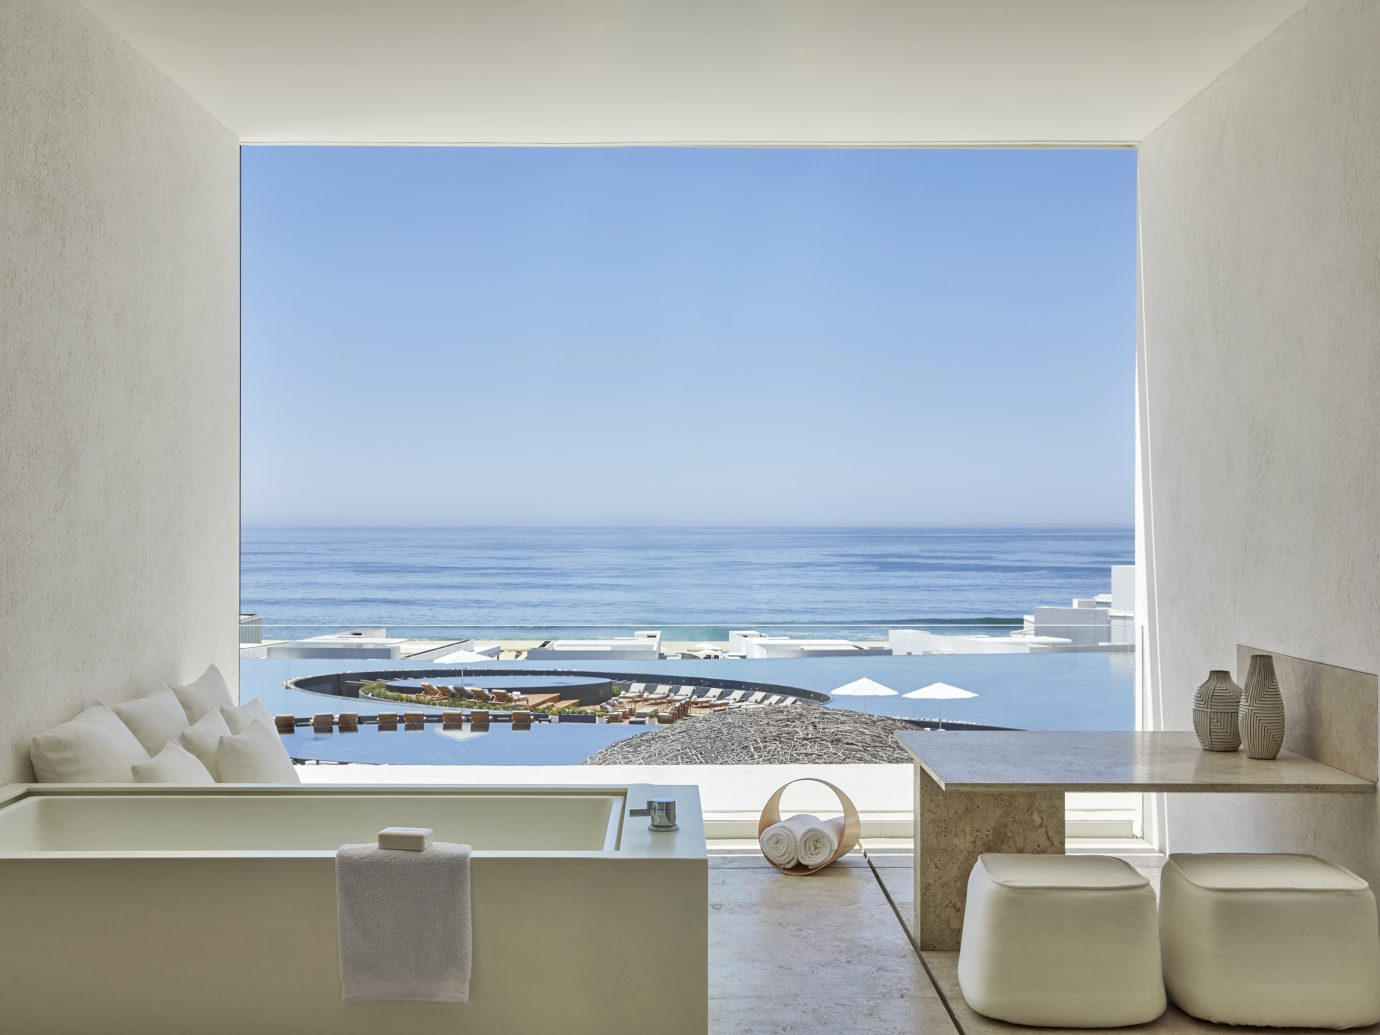 Open bathroom with a view of the ocean and pools